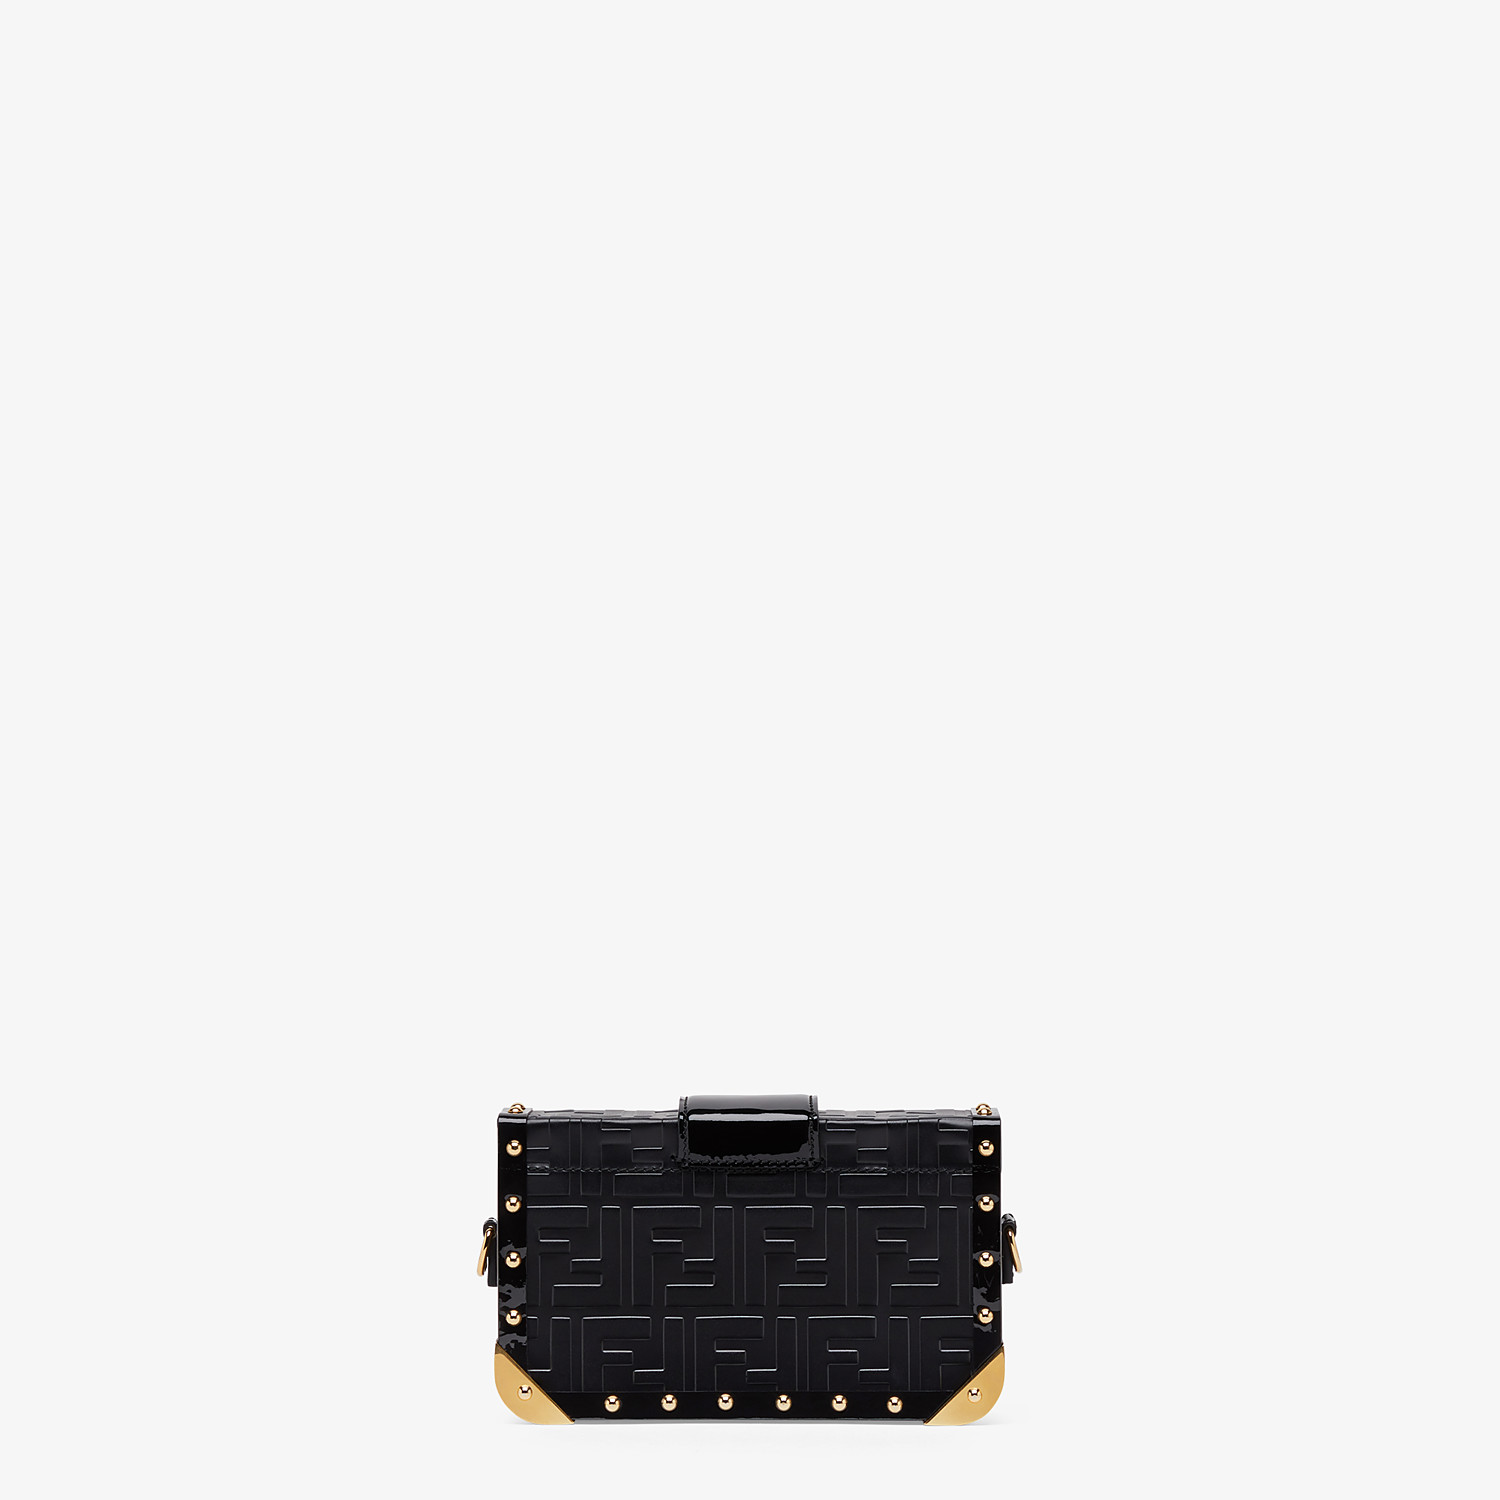 FENDI BAGUETTE TRUNK MINI - Black leather bag - view 3 detail